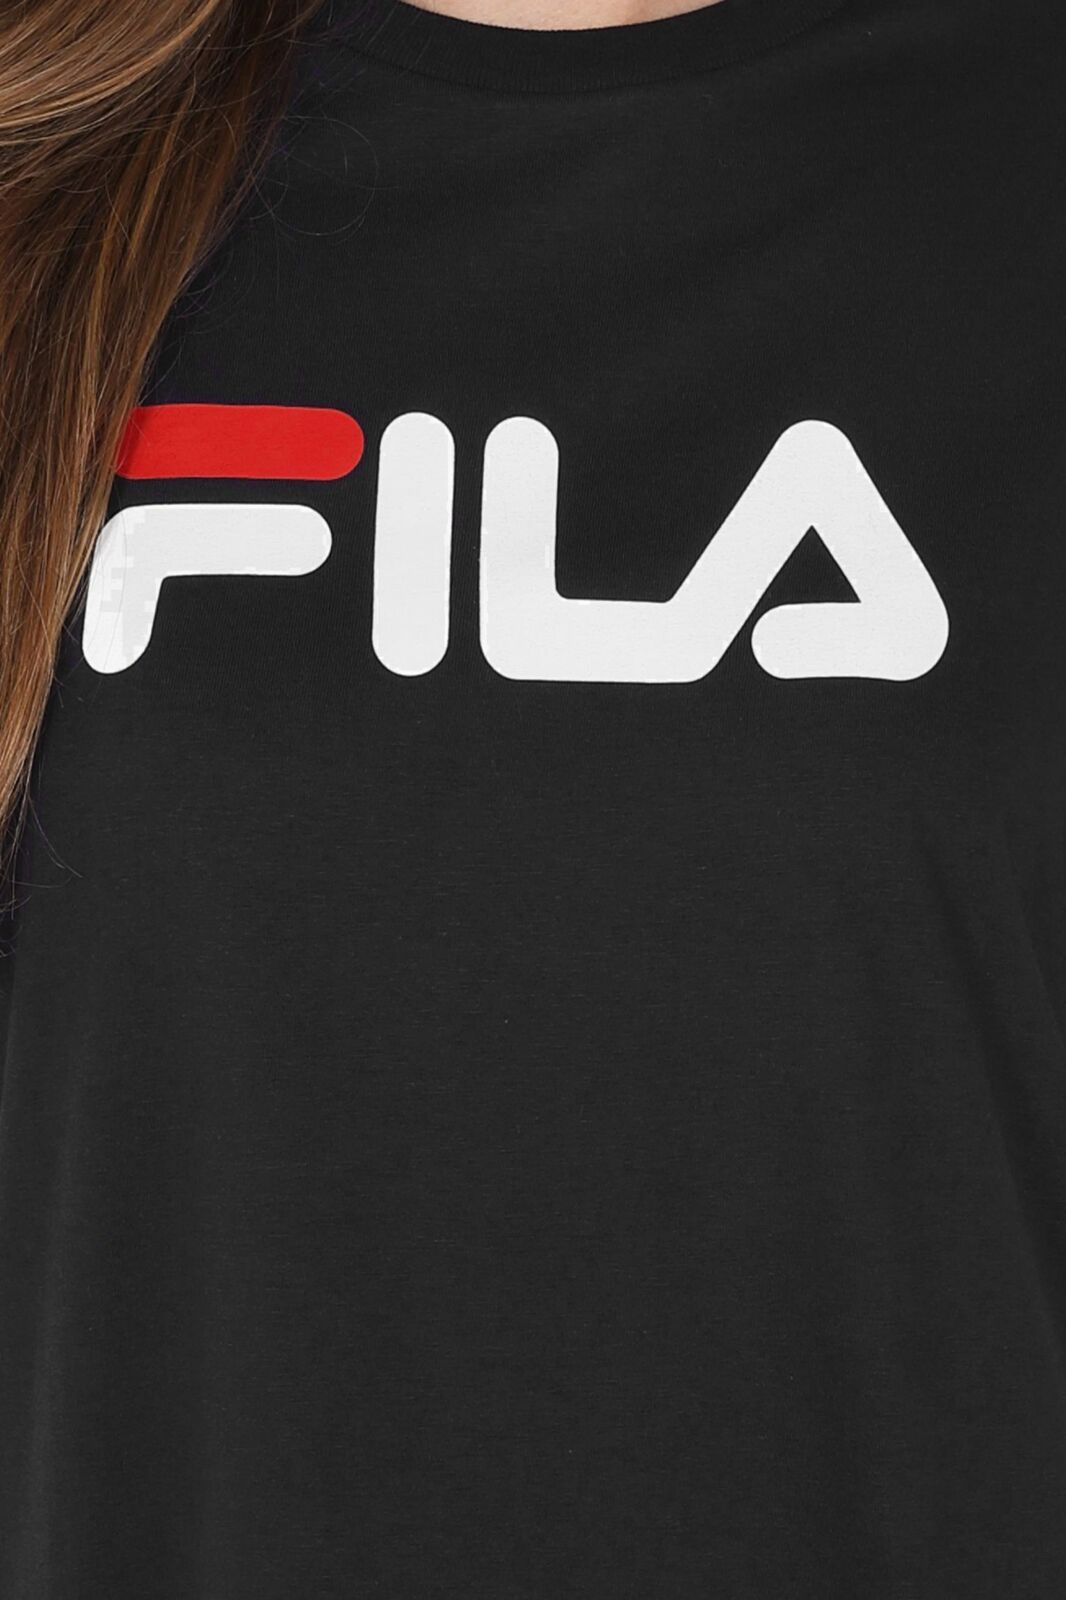 94e610018ebc Fila T-Shirt & Tops Women's Assorted Fit Styles | eBay